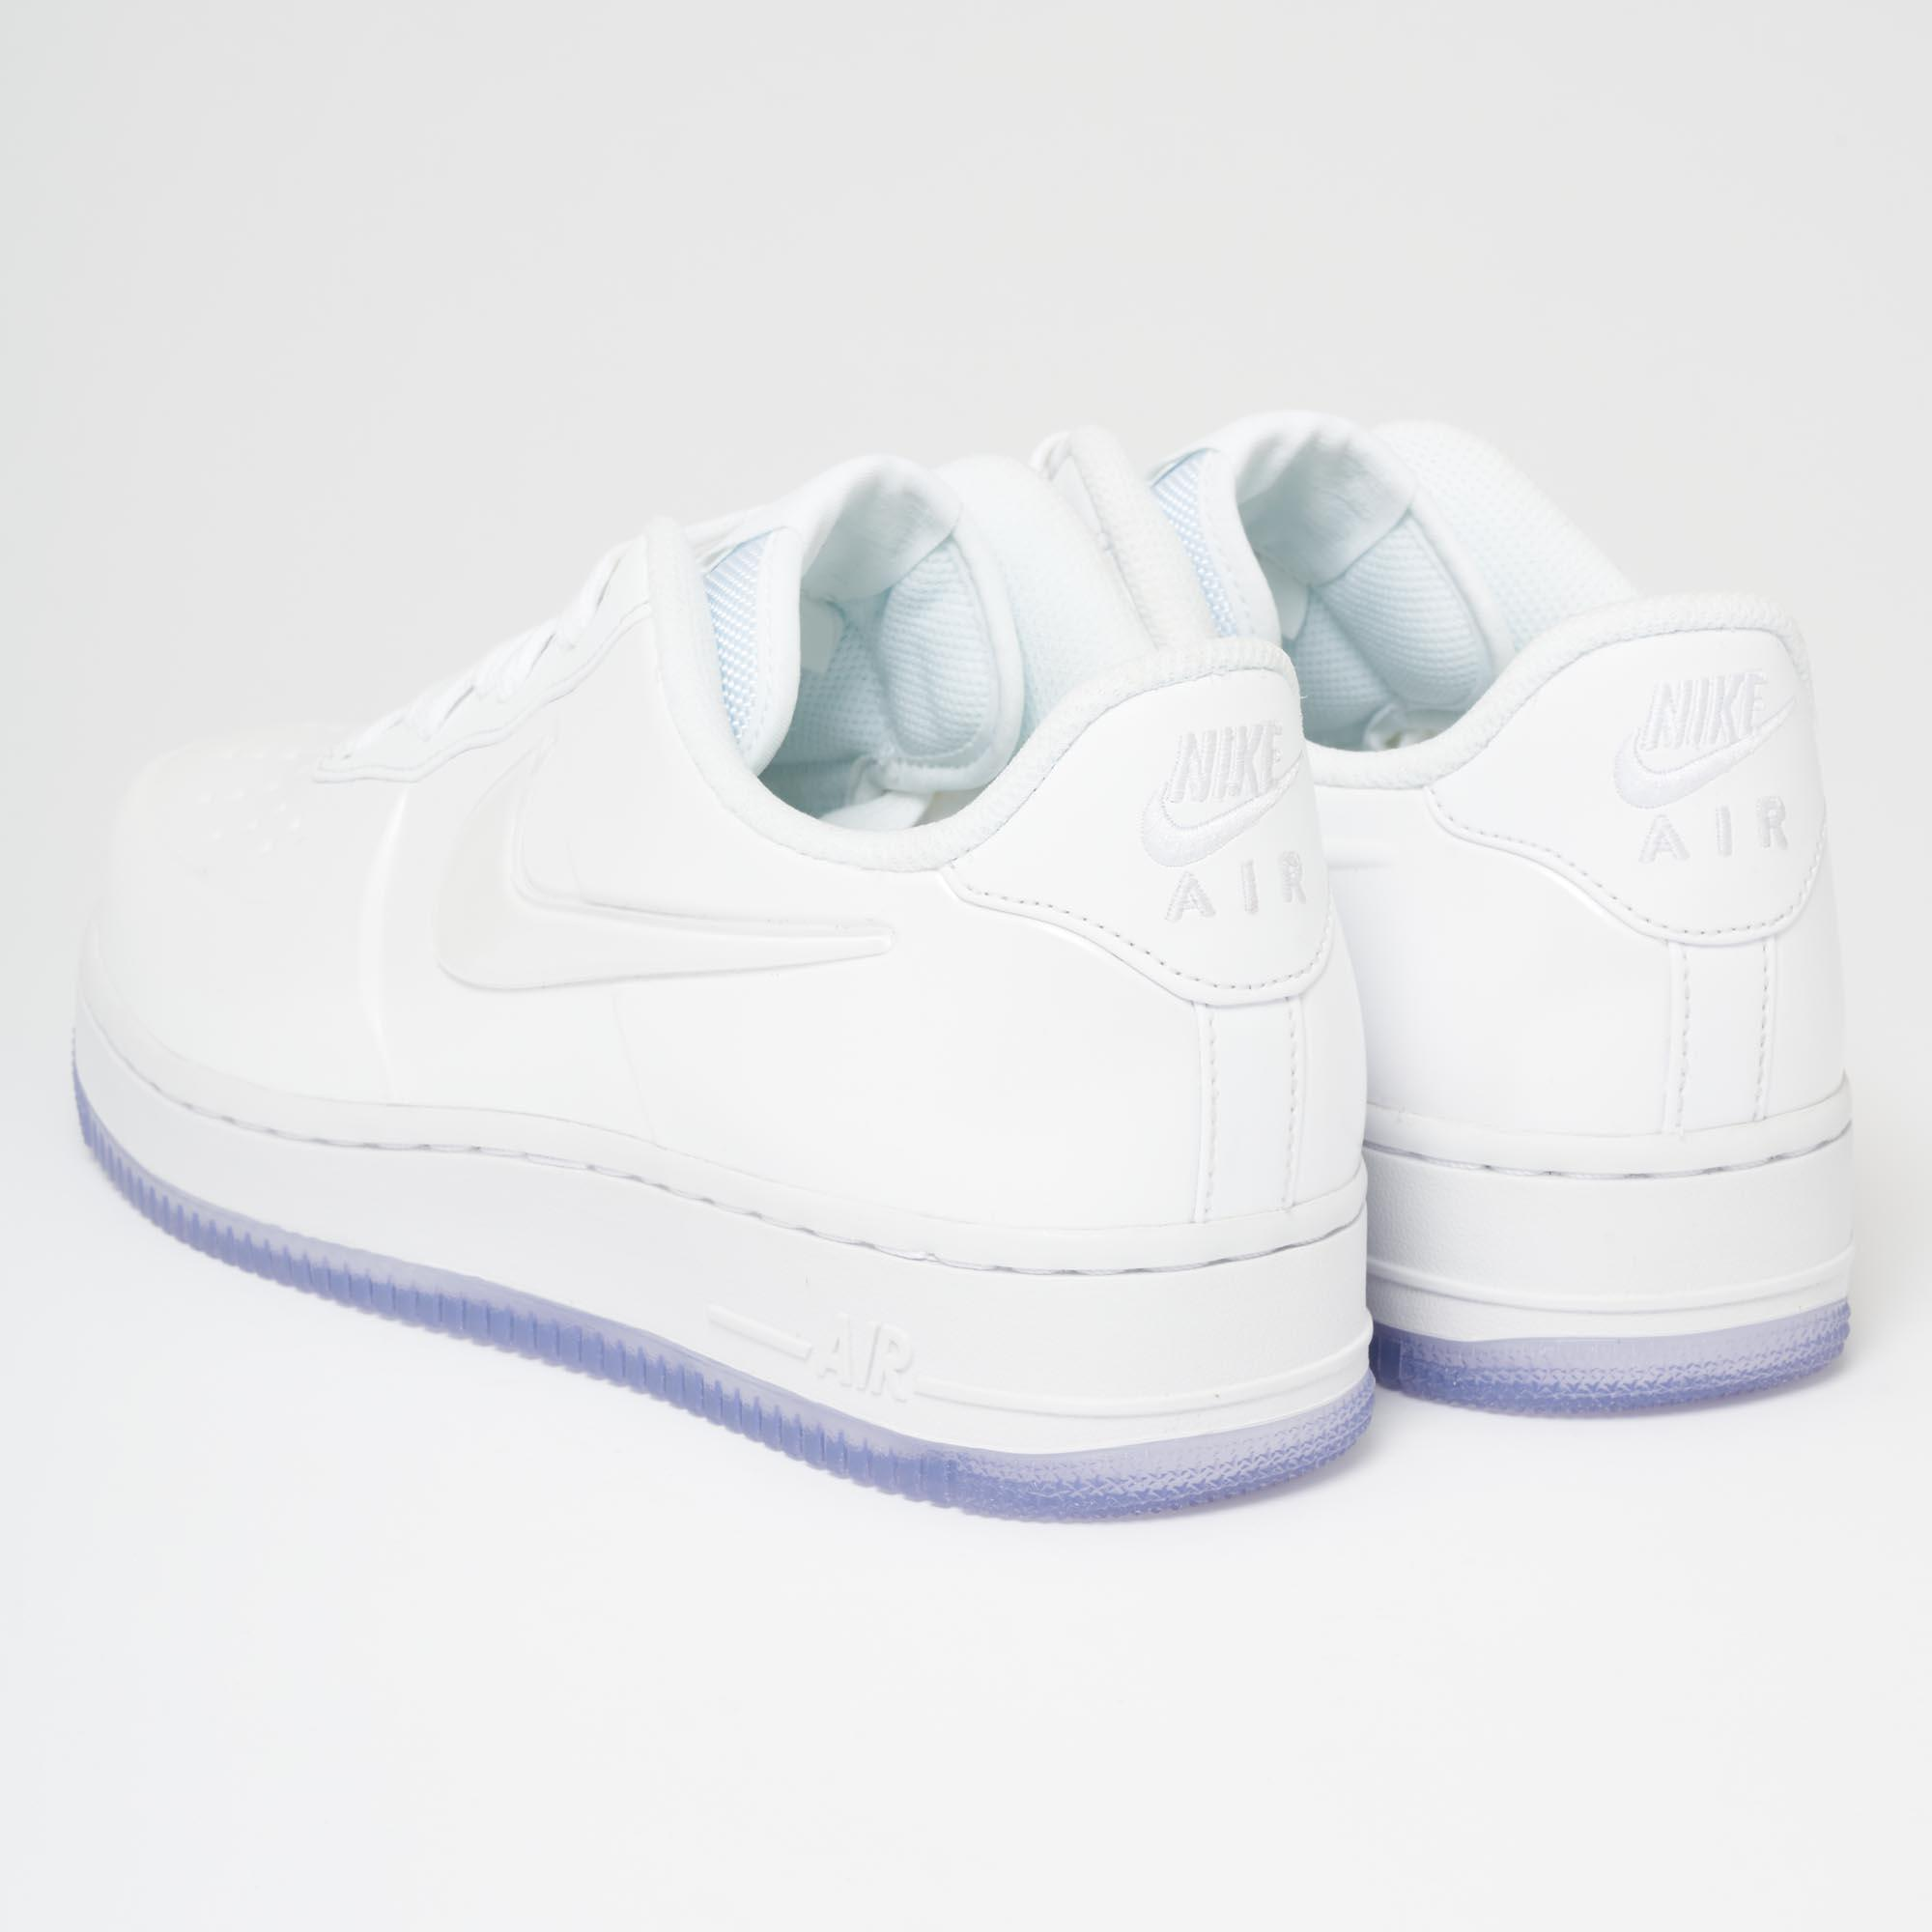 quality design 4f7ff aa670 Nike White Air Force 1 Foamposite Pro Cupsole